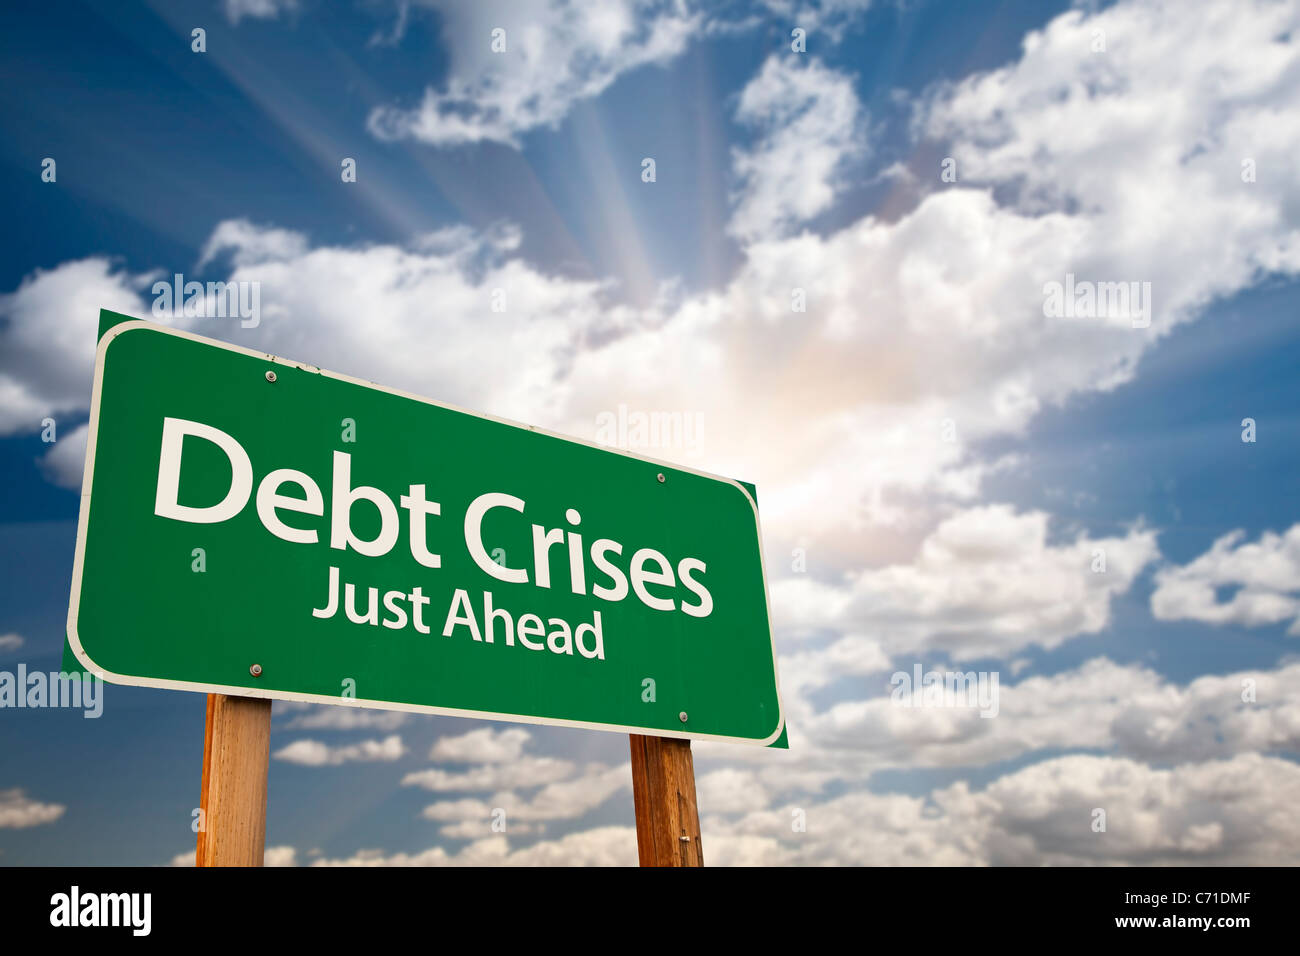 Debt Crises Green Road Sign Against Dramatic Sky, Clouds and Sunburst. - Stock Image